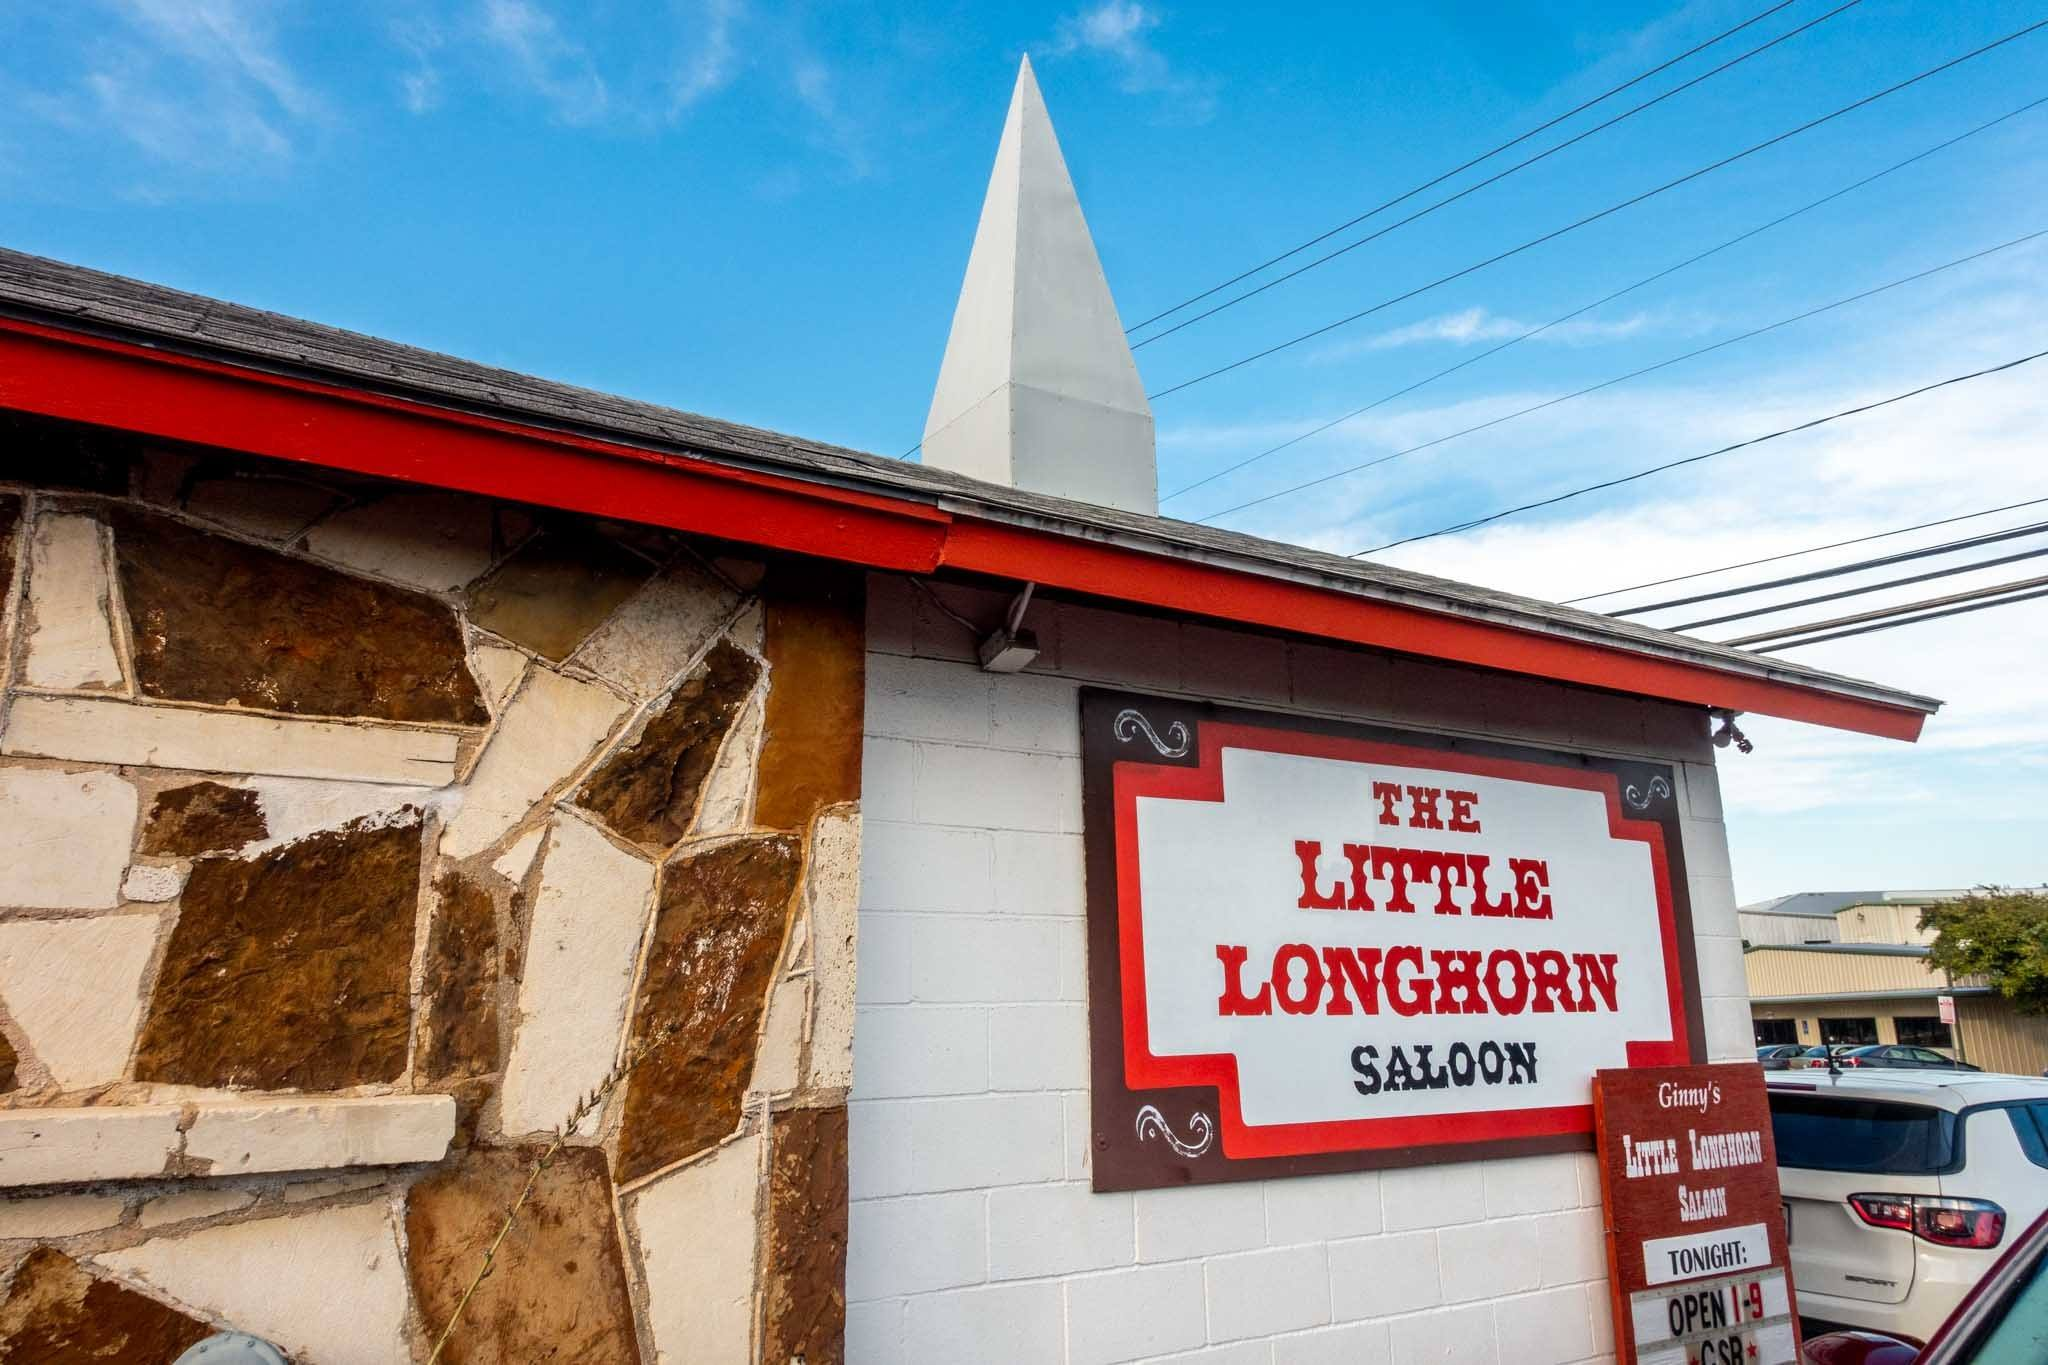 Small white building with a steeple, The Little Longhorn Saloon